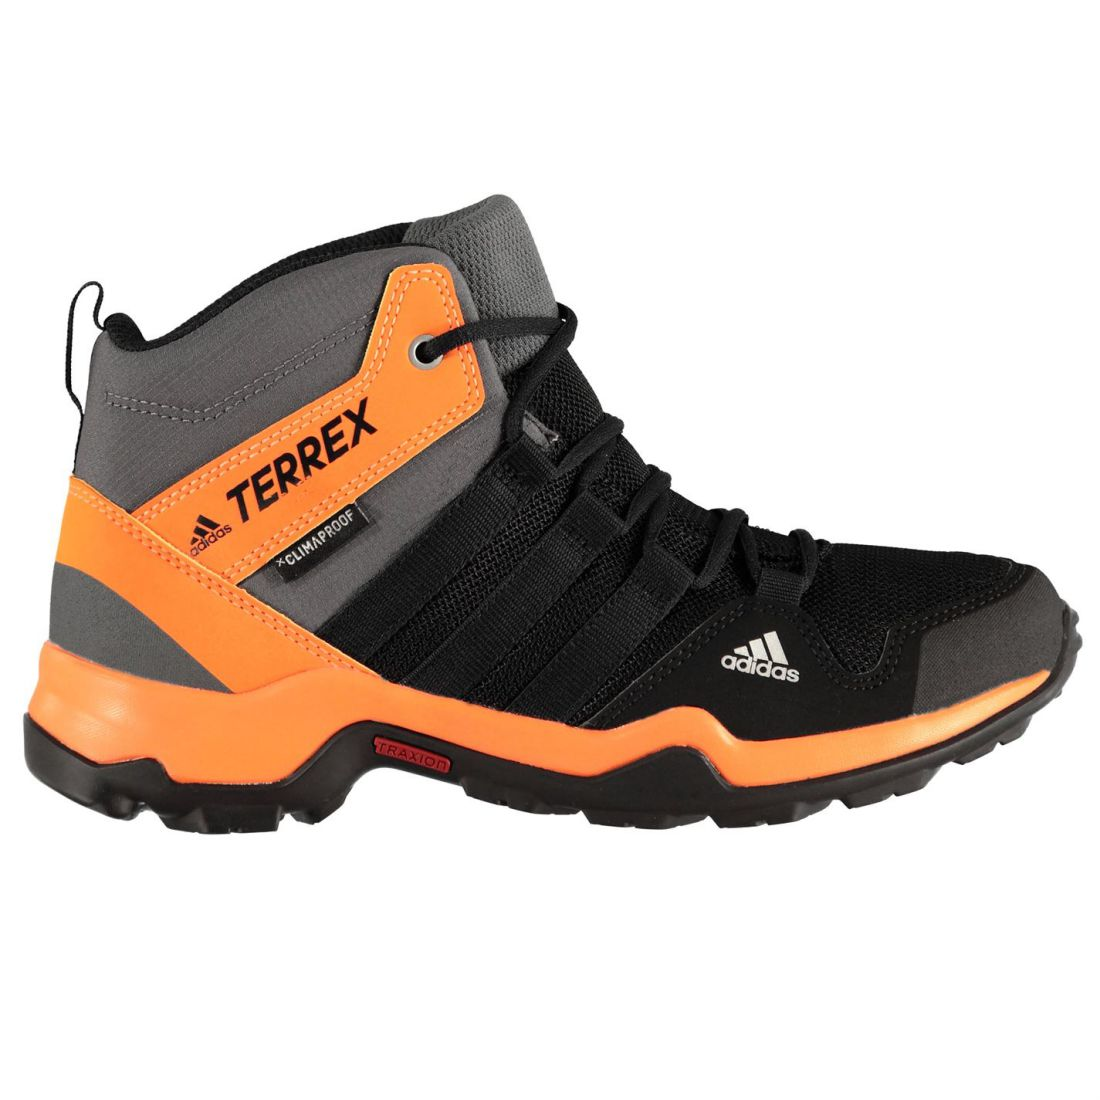 75bb3fdcd85 adidas TERREX AX2R Mid Youngster Walking Boots Childrens Laces ...